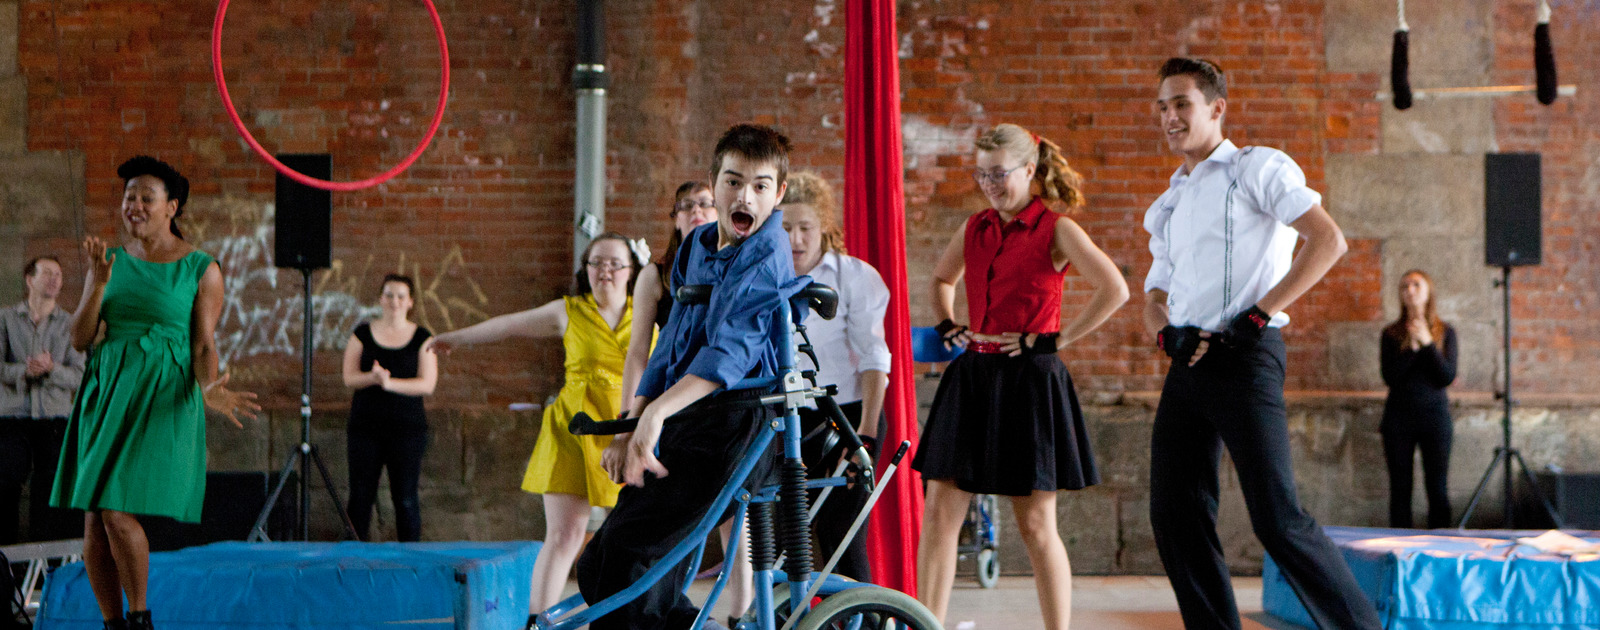 Boy in Wheelchair performing at Unlimited Festival